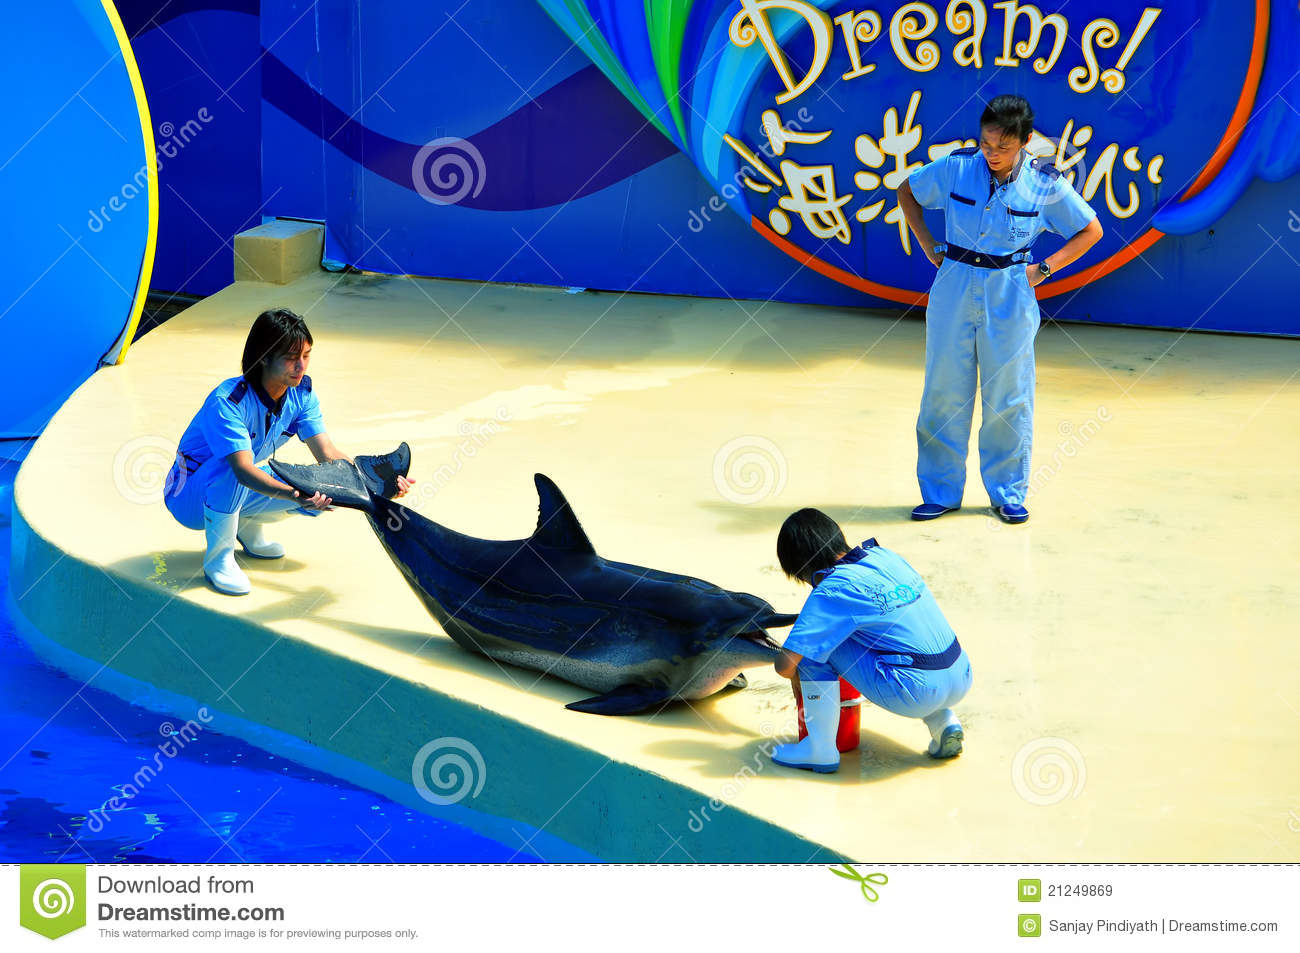 Dolphin show clipart #13